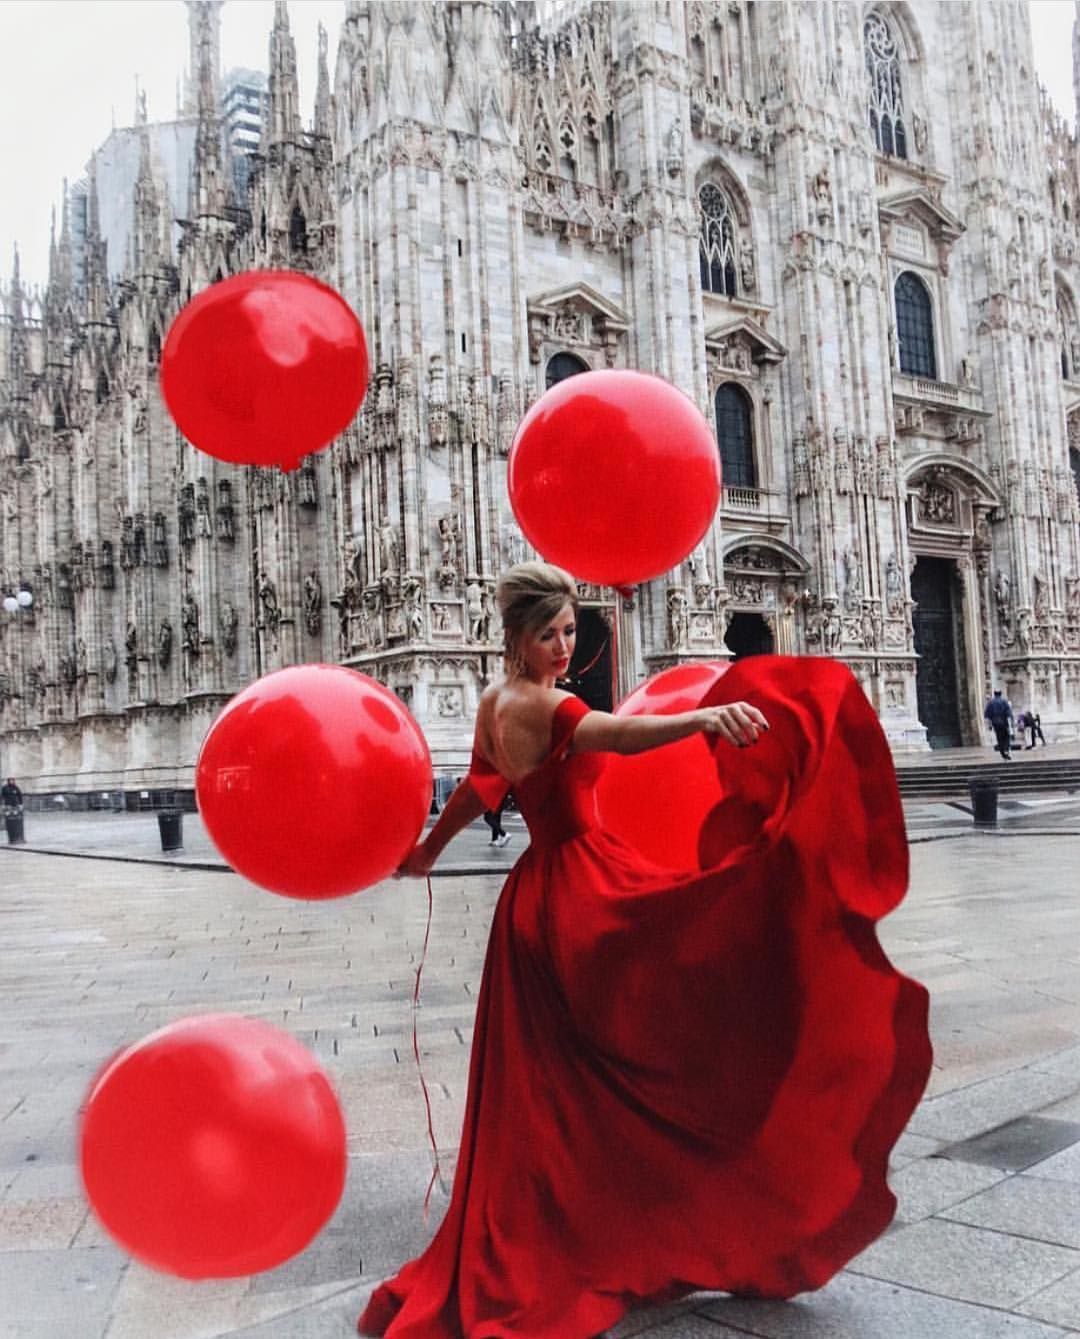 Red Maxi Gown For Prom Party: Best Design To Show Off Your Back 2019